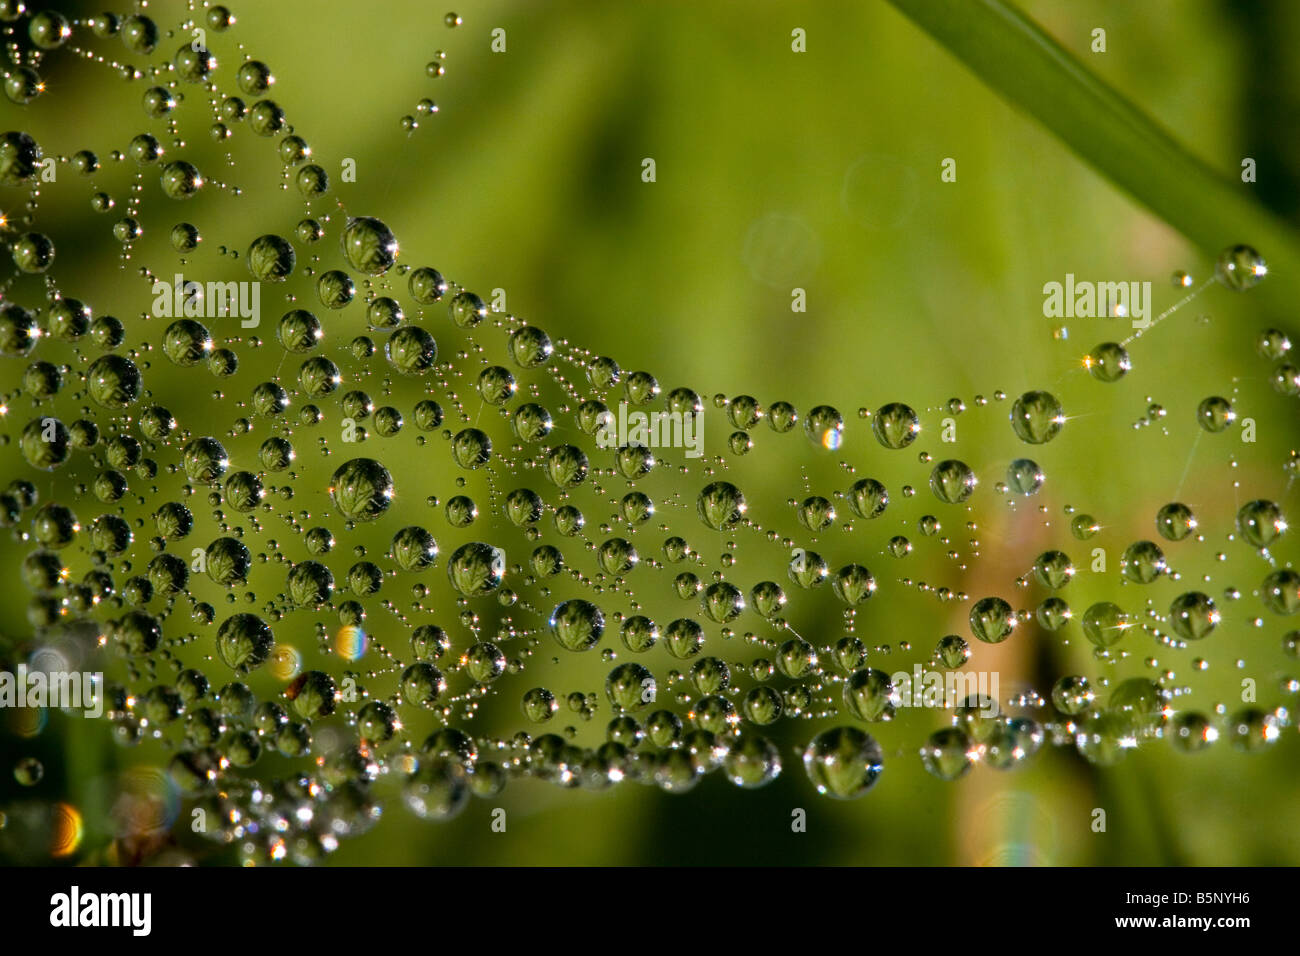 Spiderweb dewdrops large drops of dew. - Stock Image